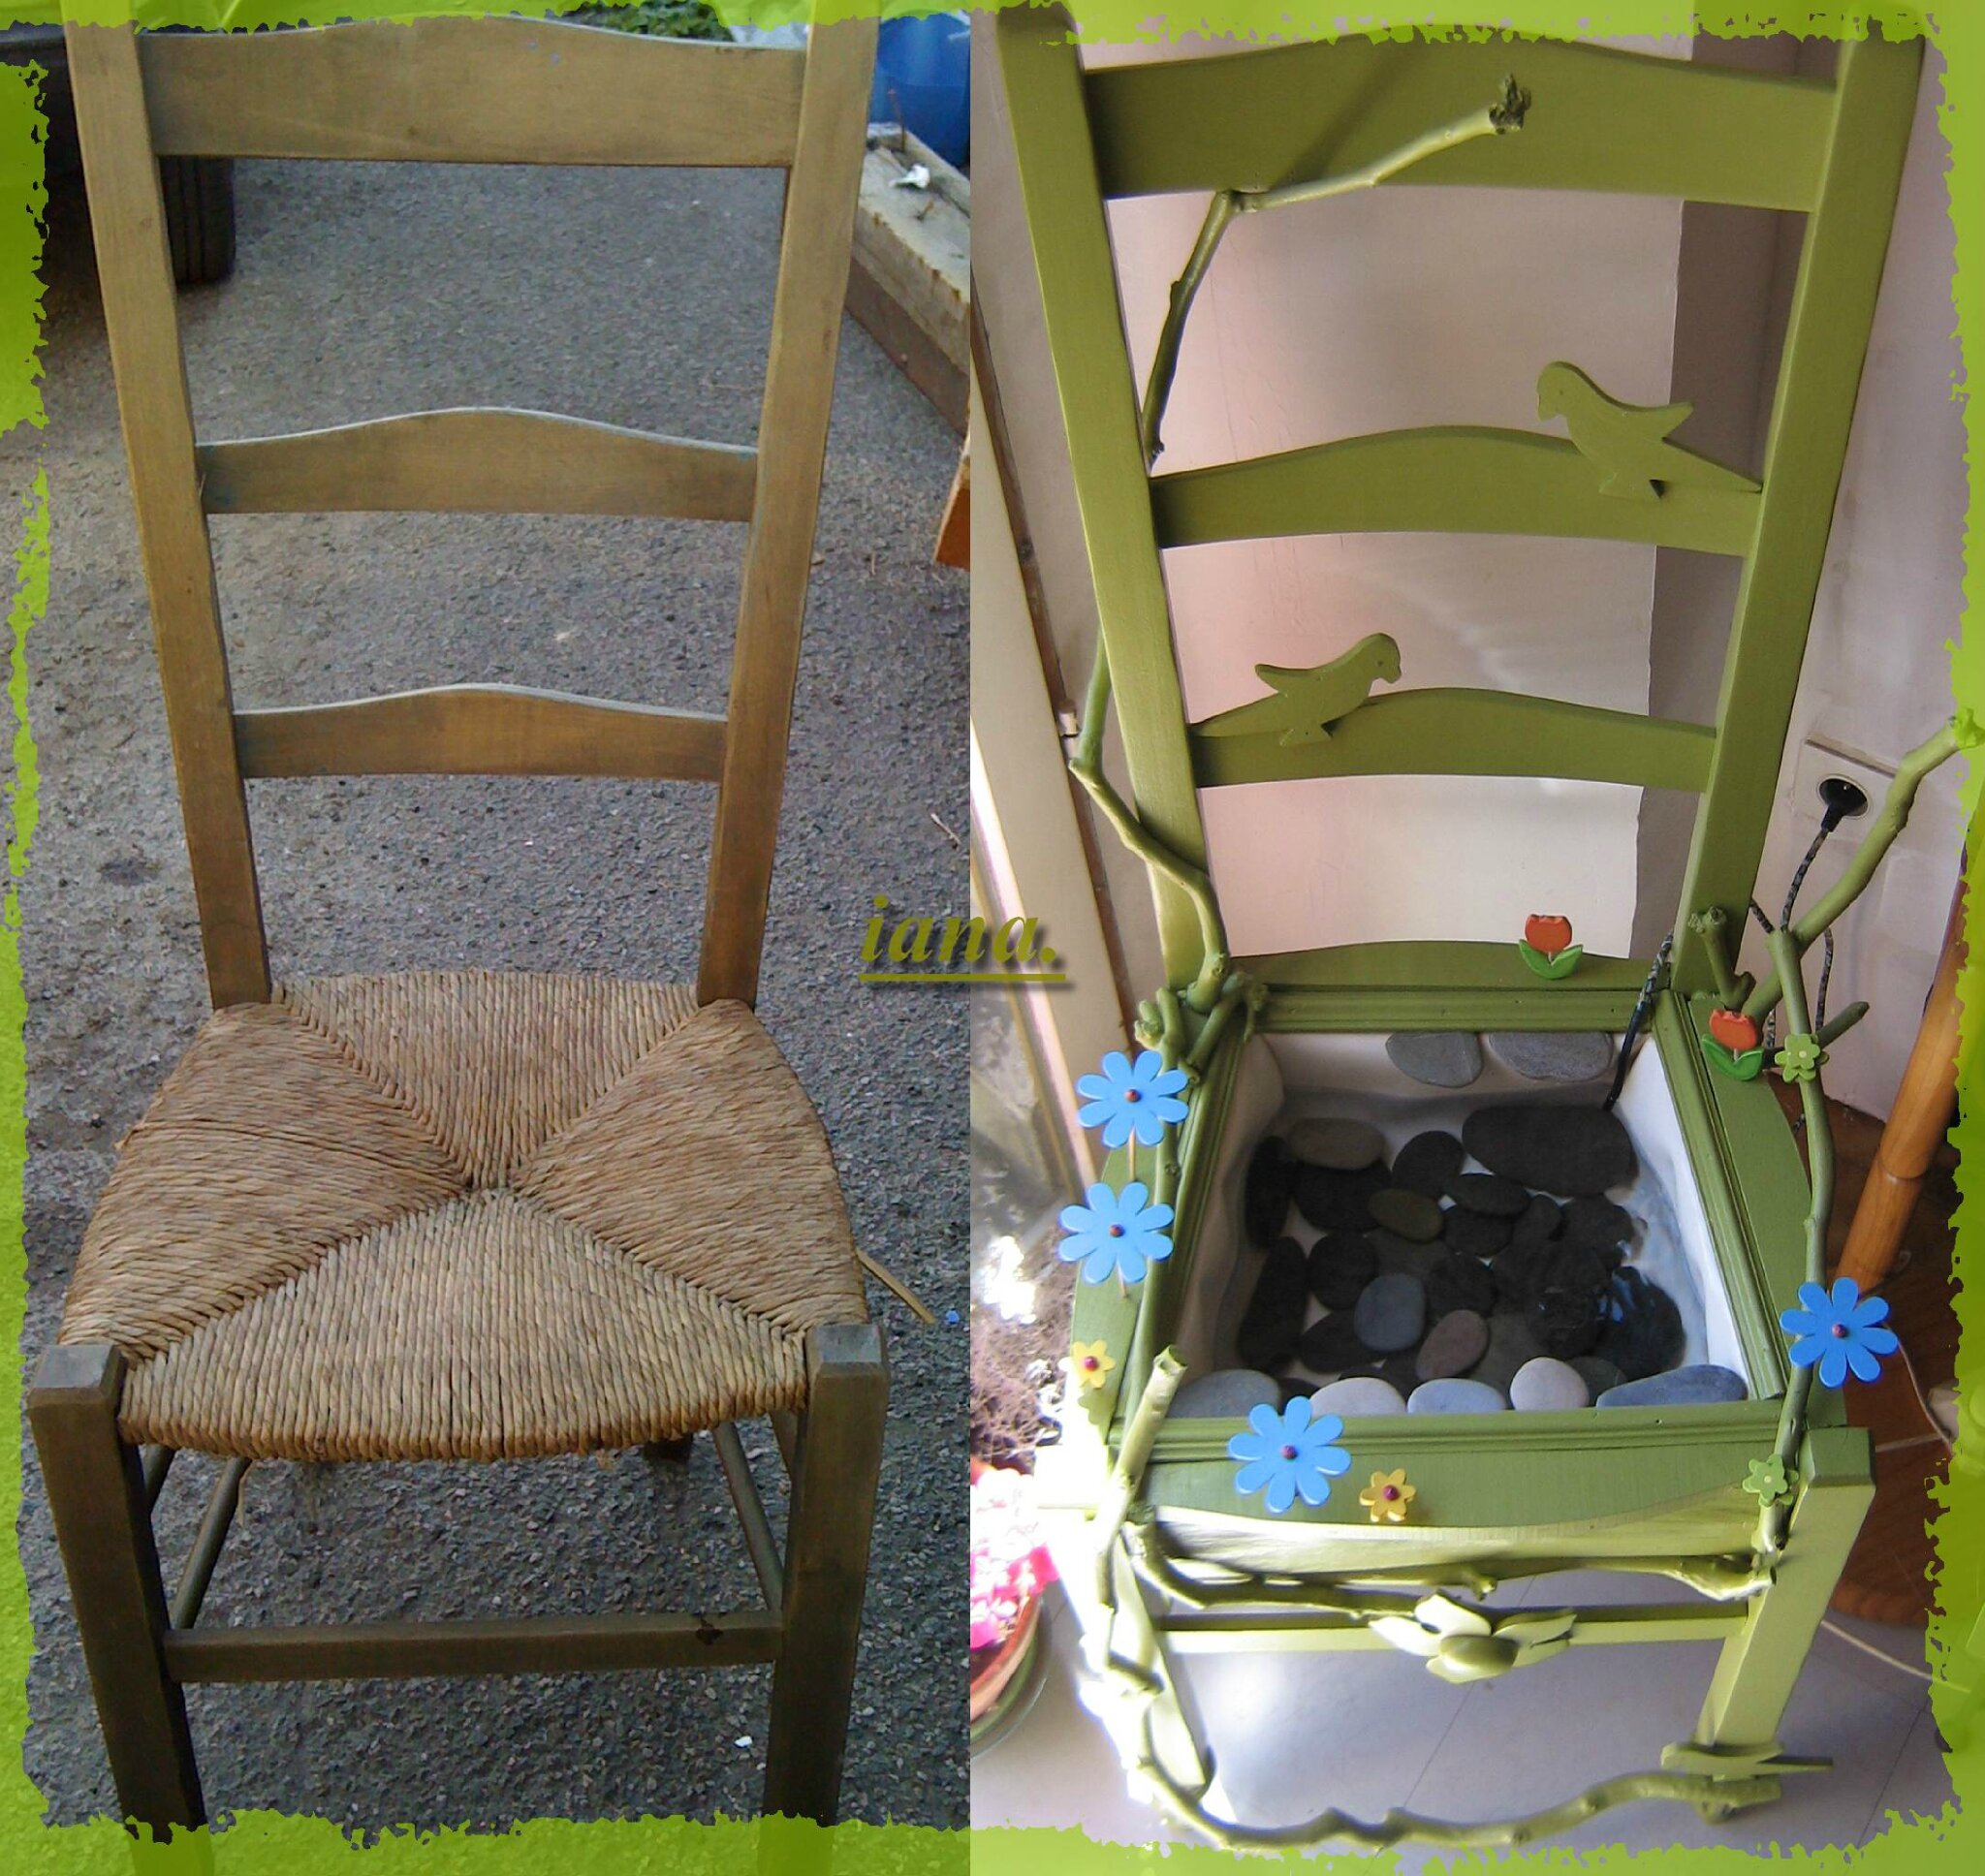 La chaise fontaine les cr ations d 39 iana r cup - Idee relooking meuble bois ...